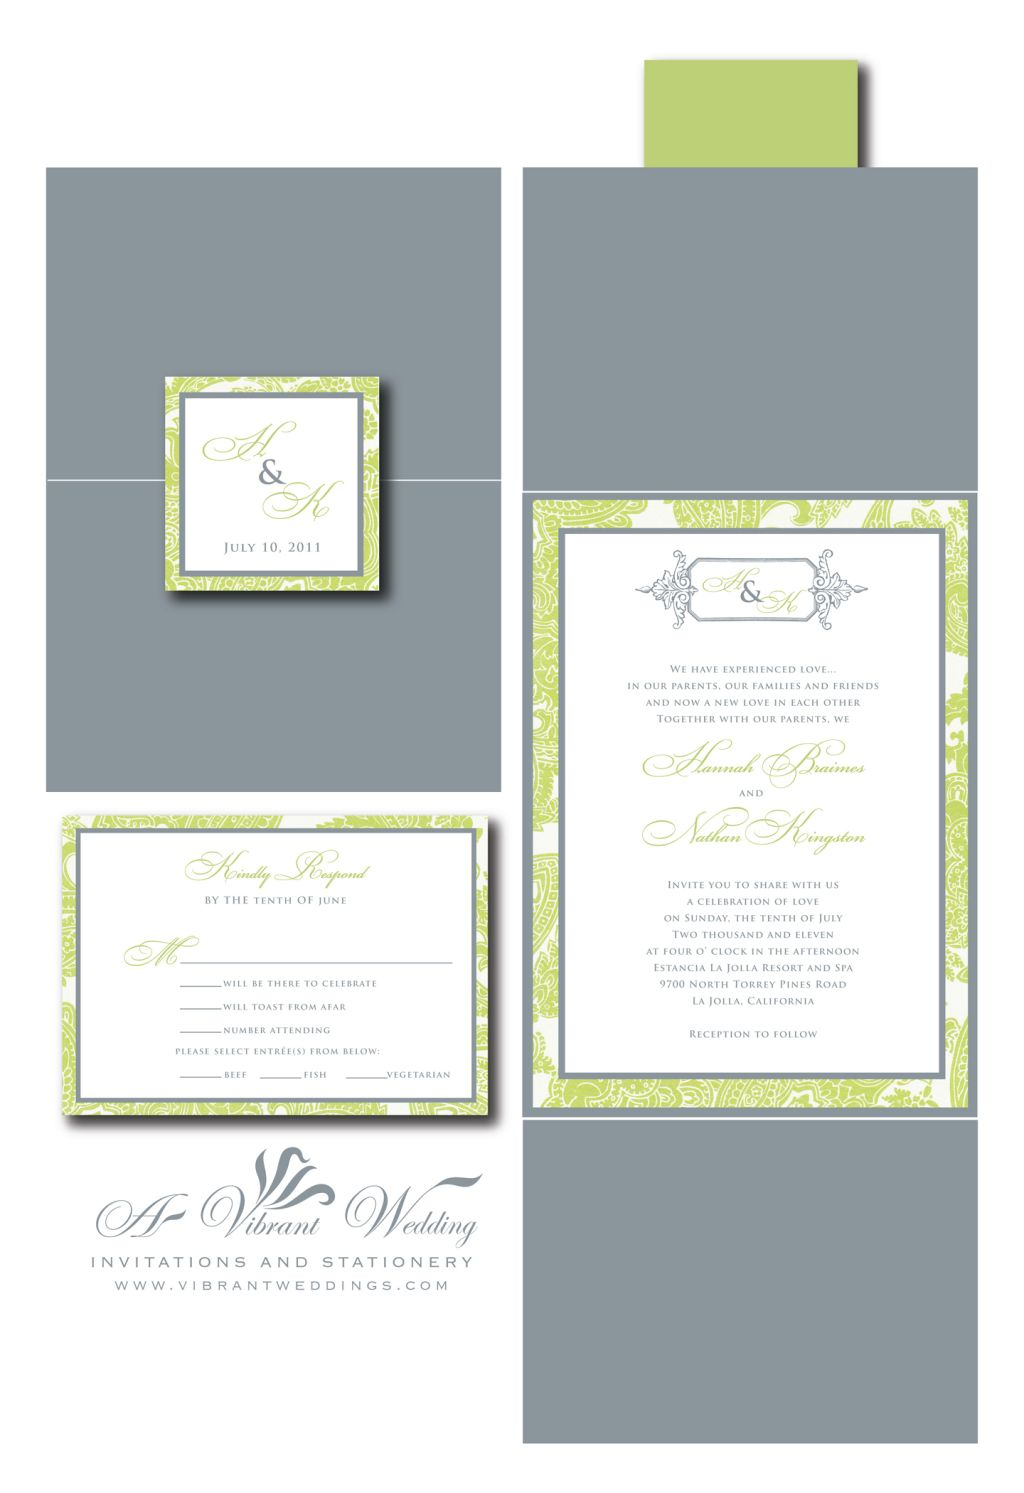 Gray & Green Wedding Invitation - Gate Fold Style | Invites ideas ...